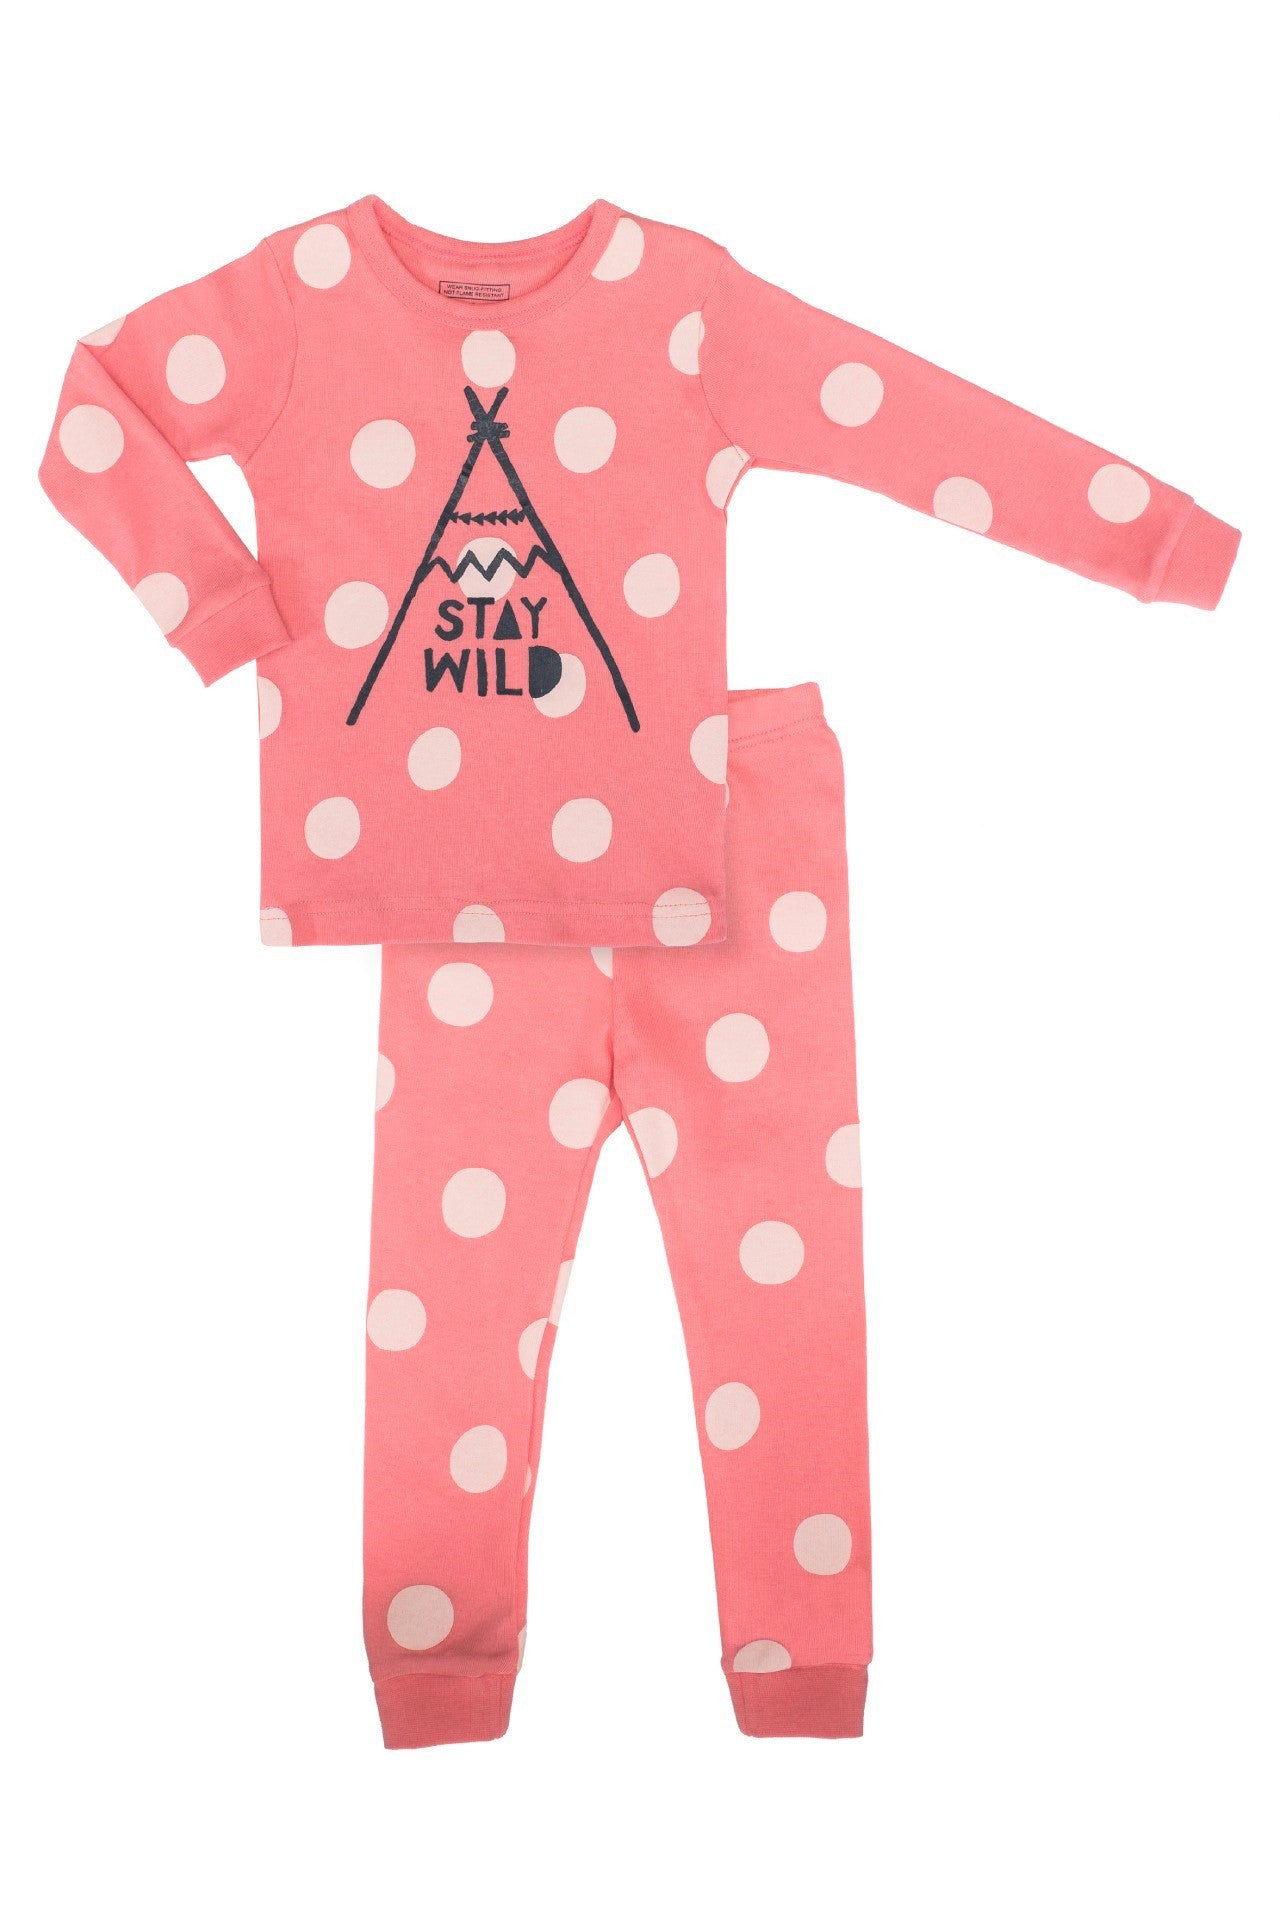 30s Cotton Count - Lightest Pajamas - Stay Wild Child (Coral)